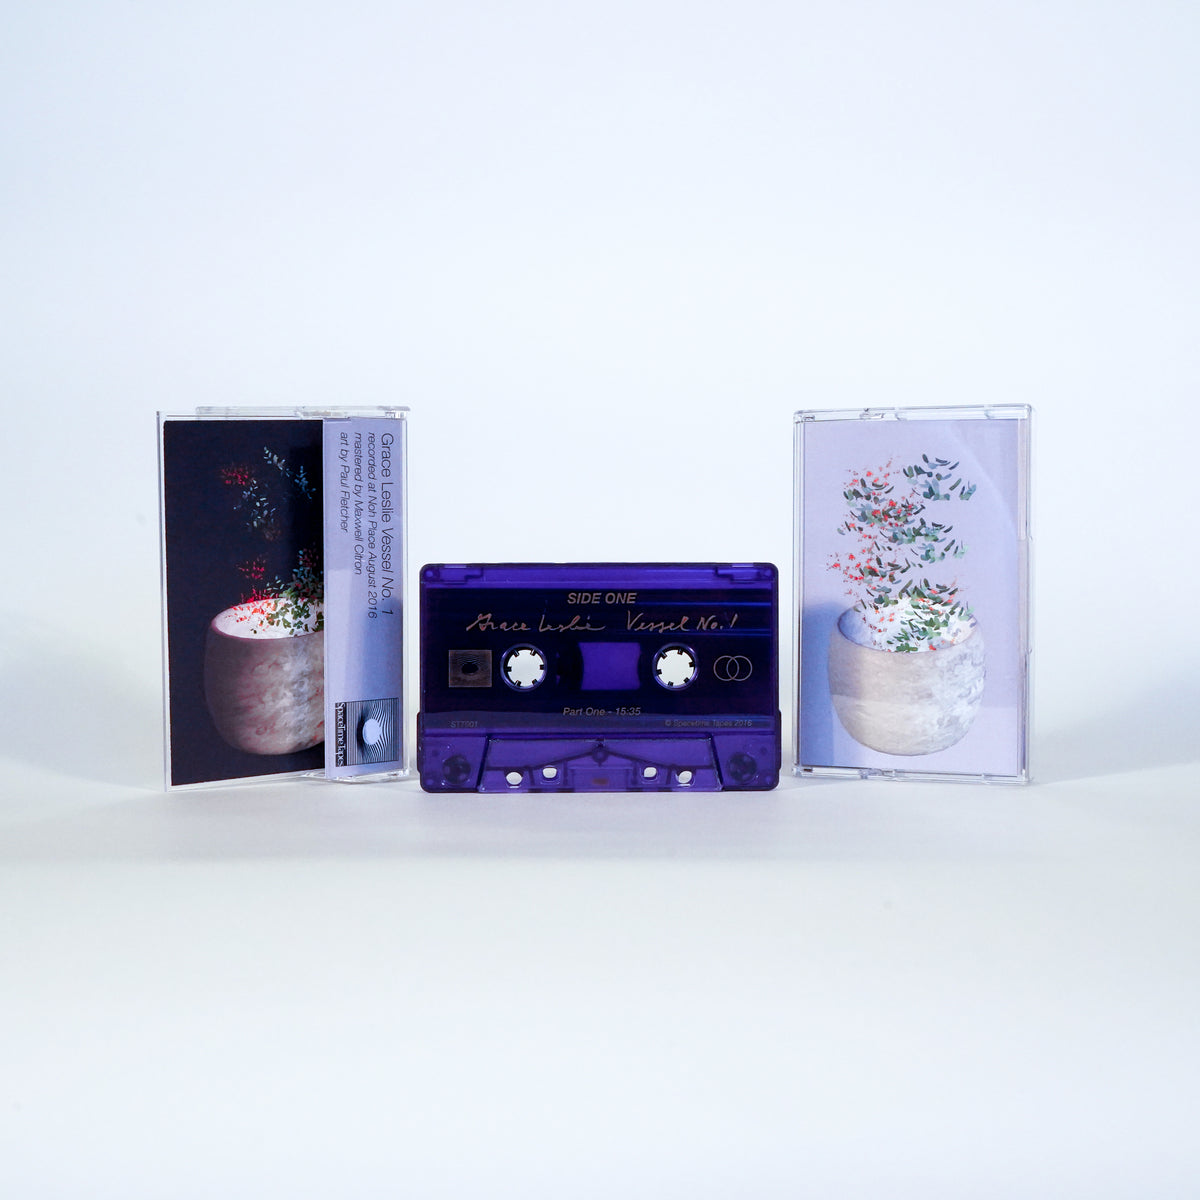 "STT001 - Grace Leslie ""Vessel no. 1"" - CS/Digital - Spacetime Tapes 2018"